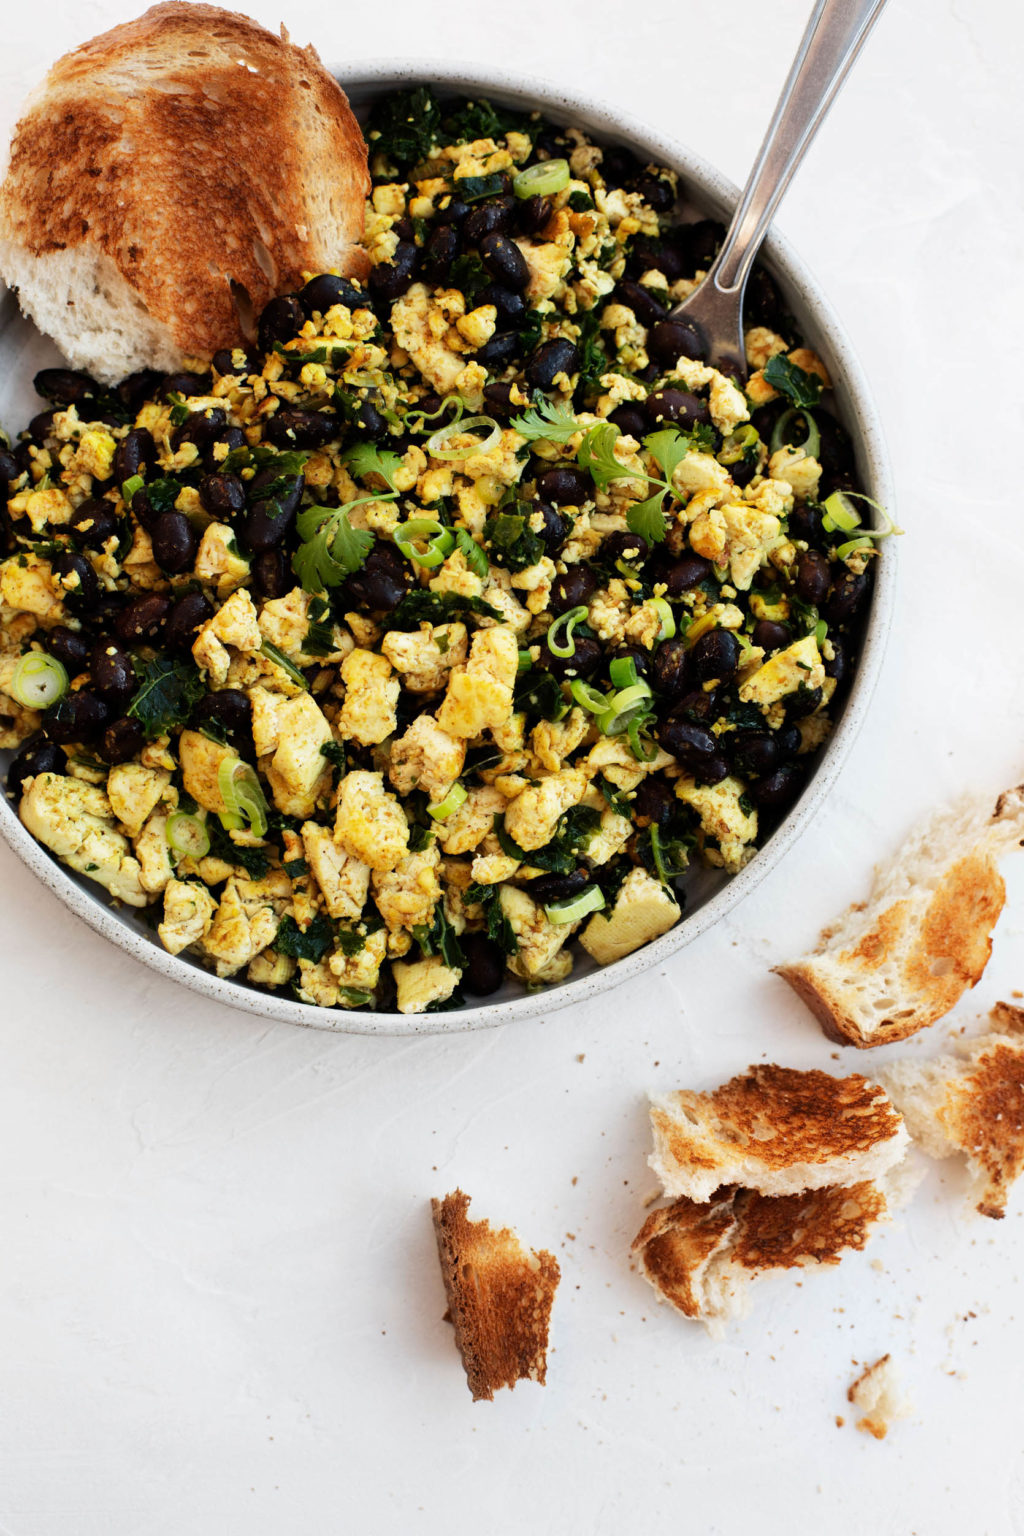 A large, round serving dish holds a savory vegan breakfast.